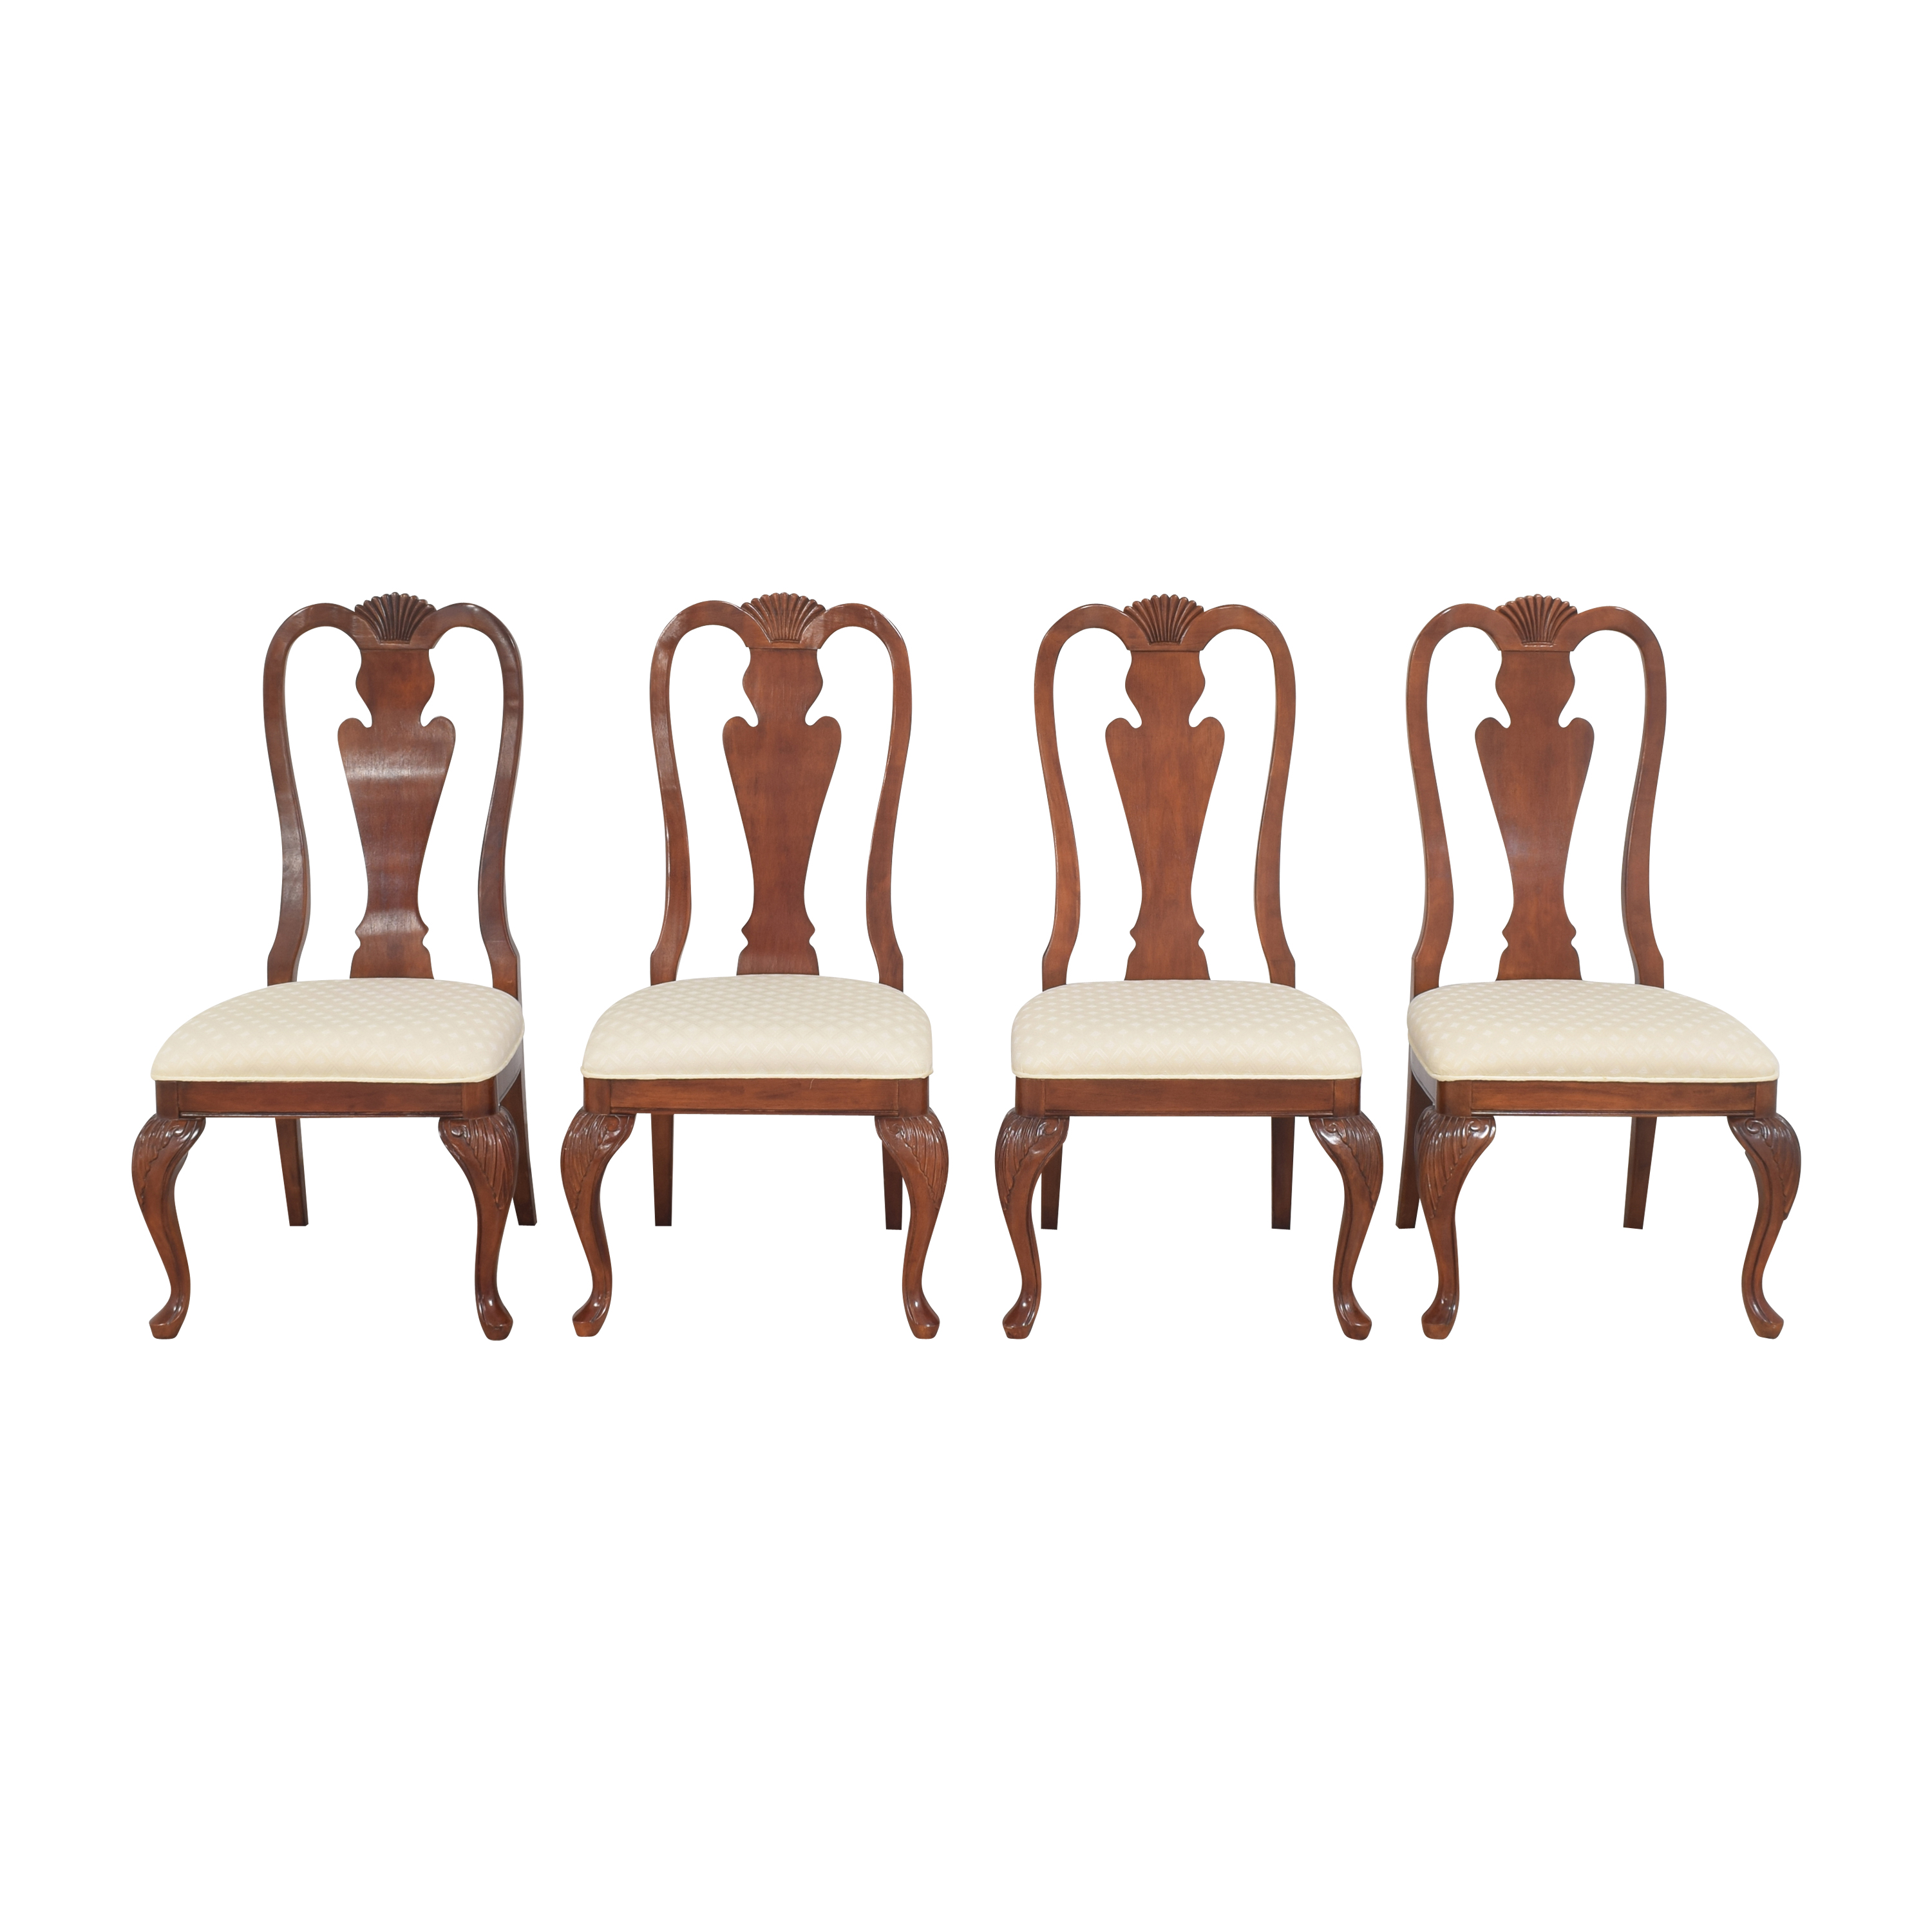 Hyundai Furniture Hyundai Furniture Queen Anne Dining Chairs ma